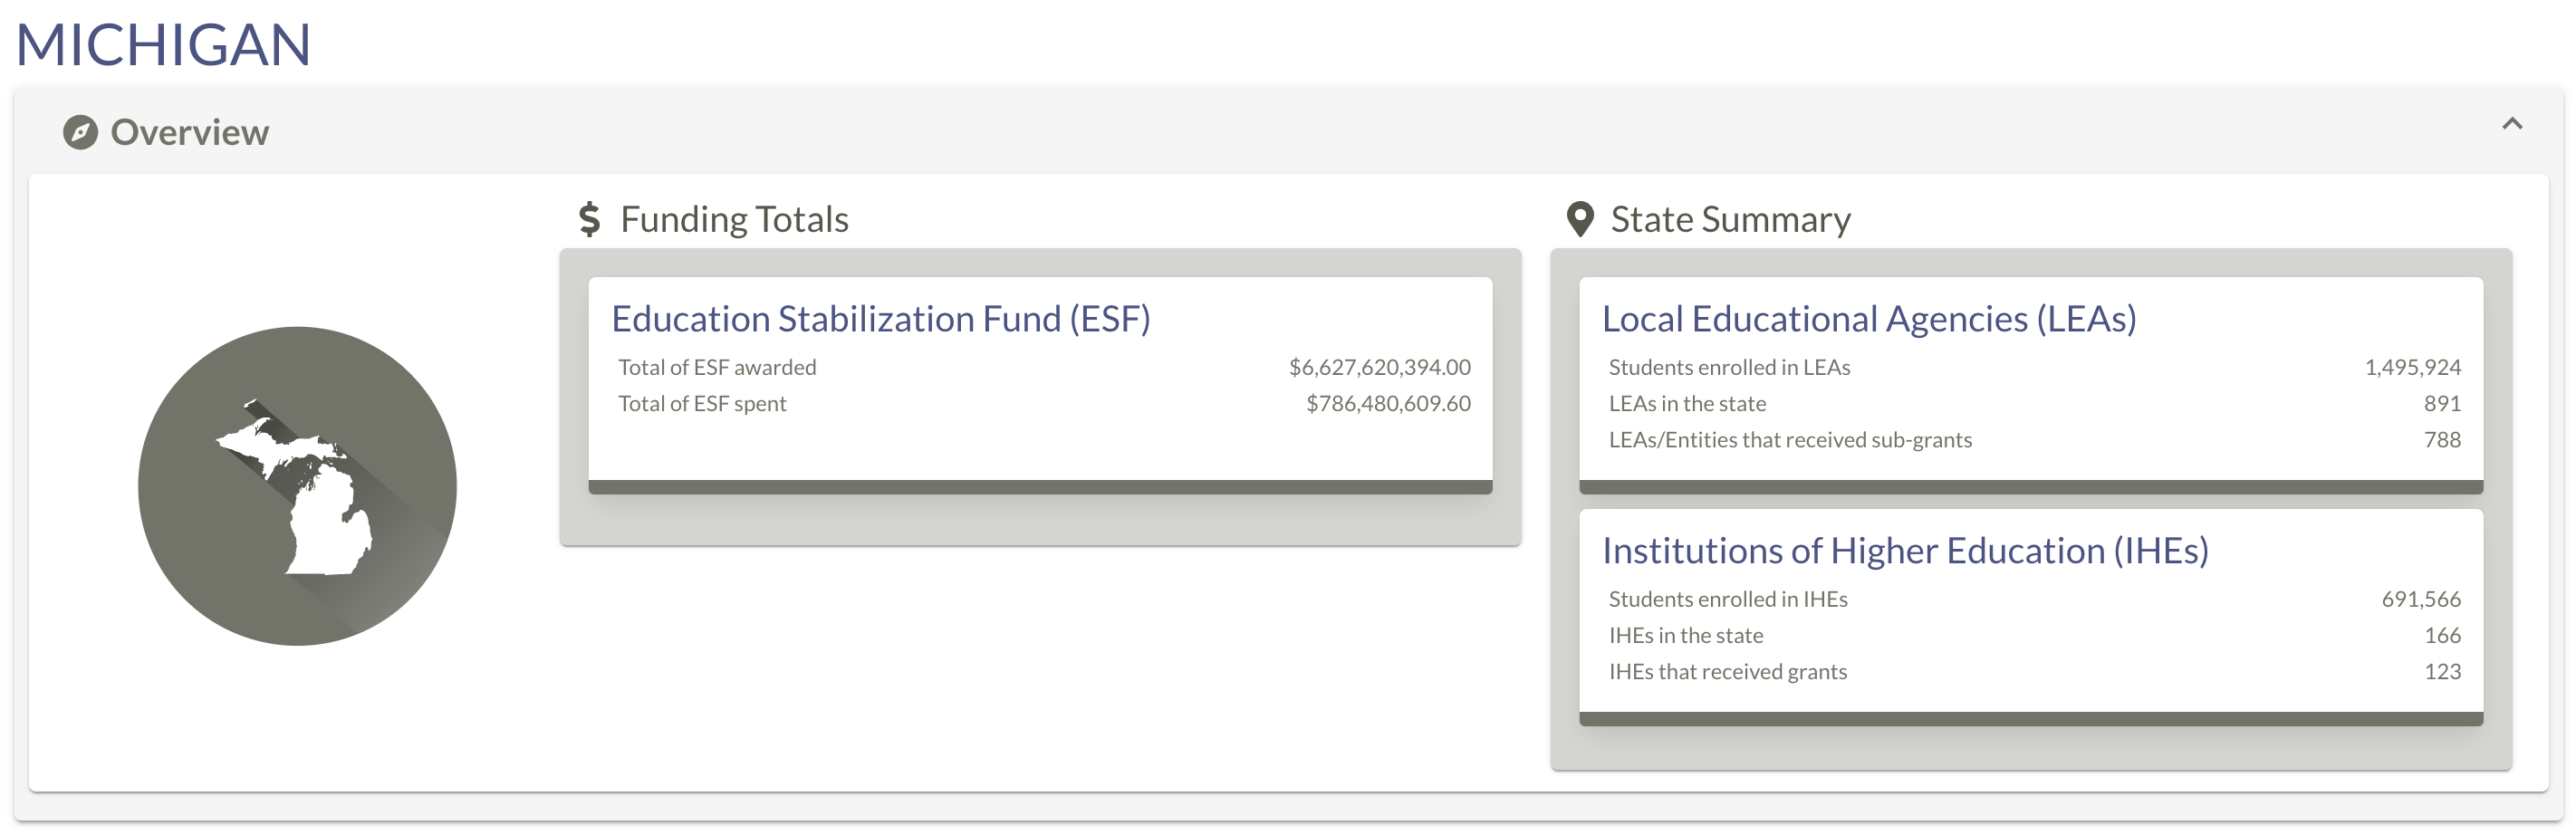 Michigan Federal Funds Available